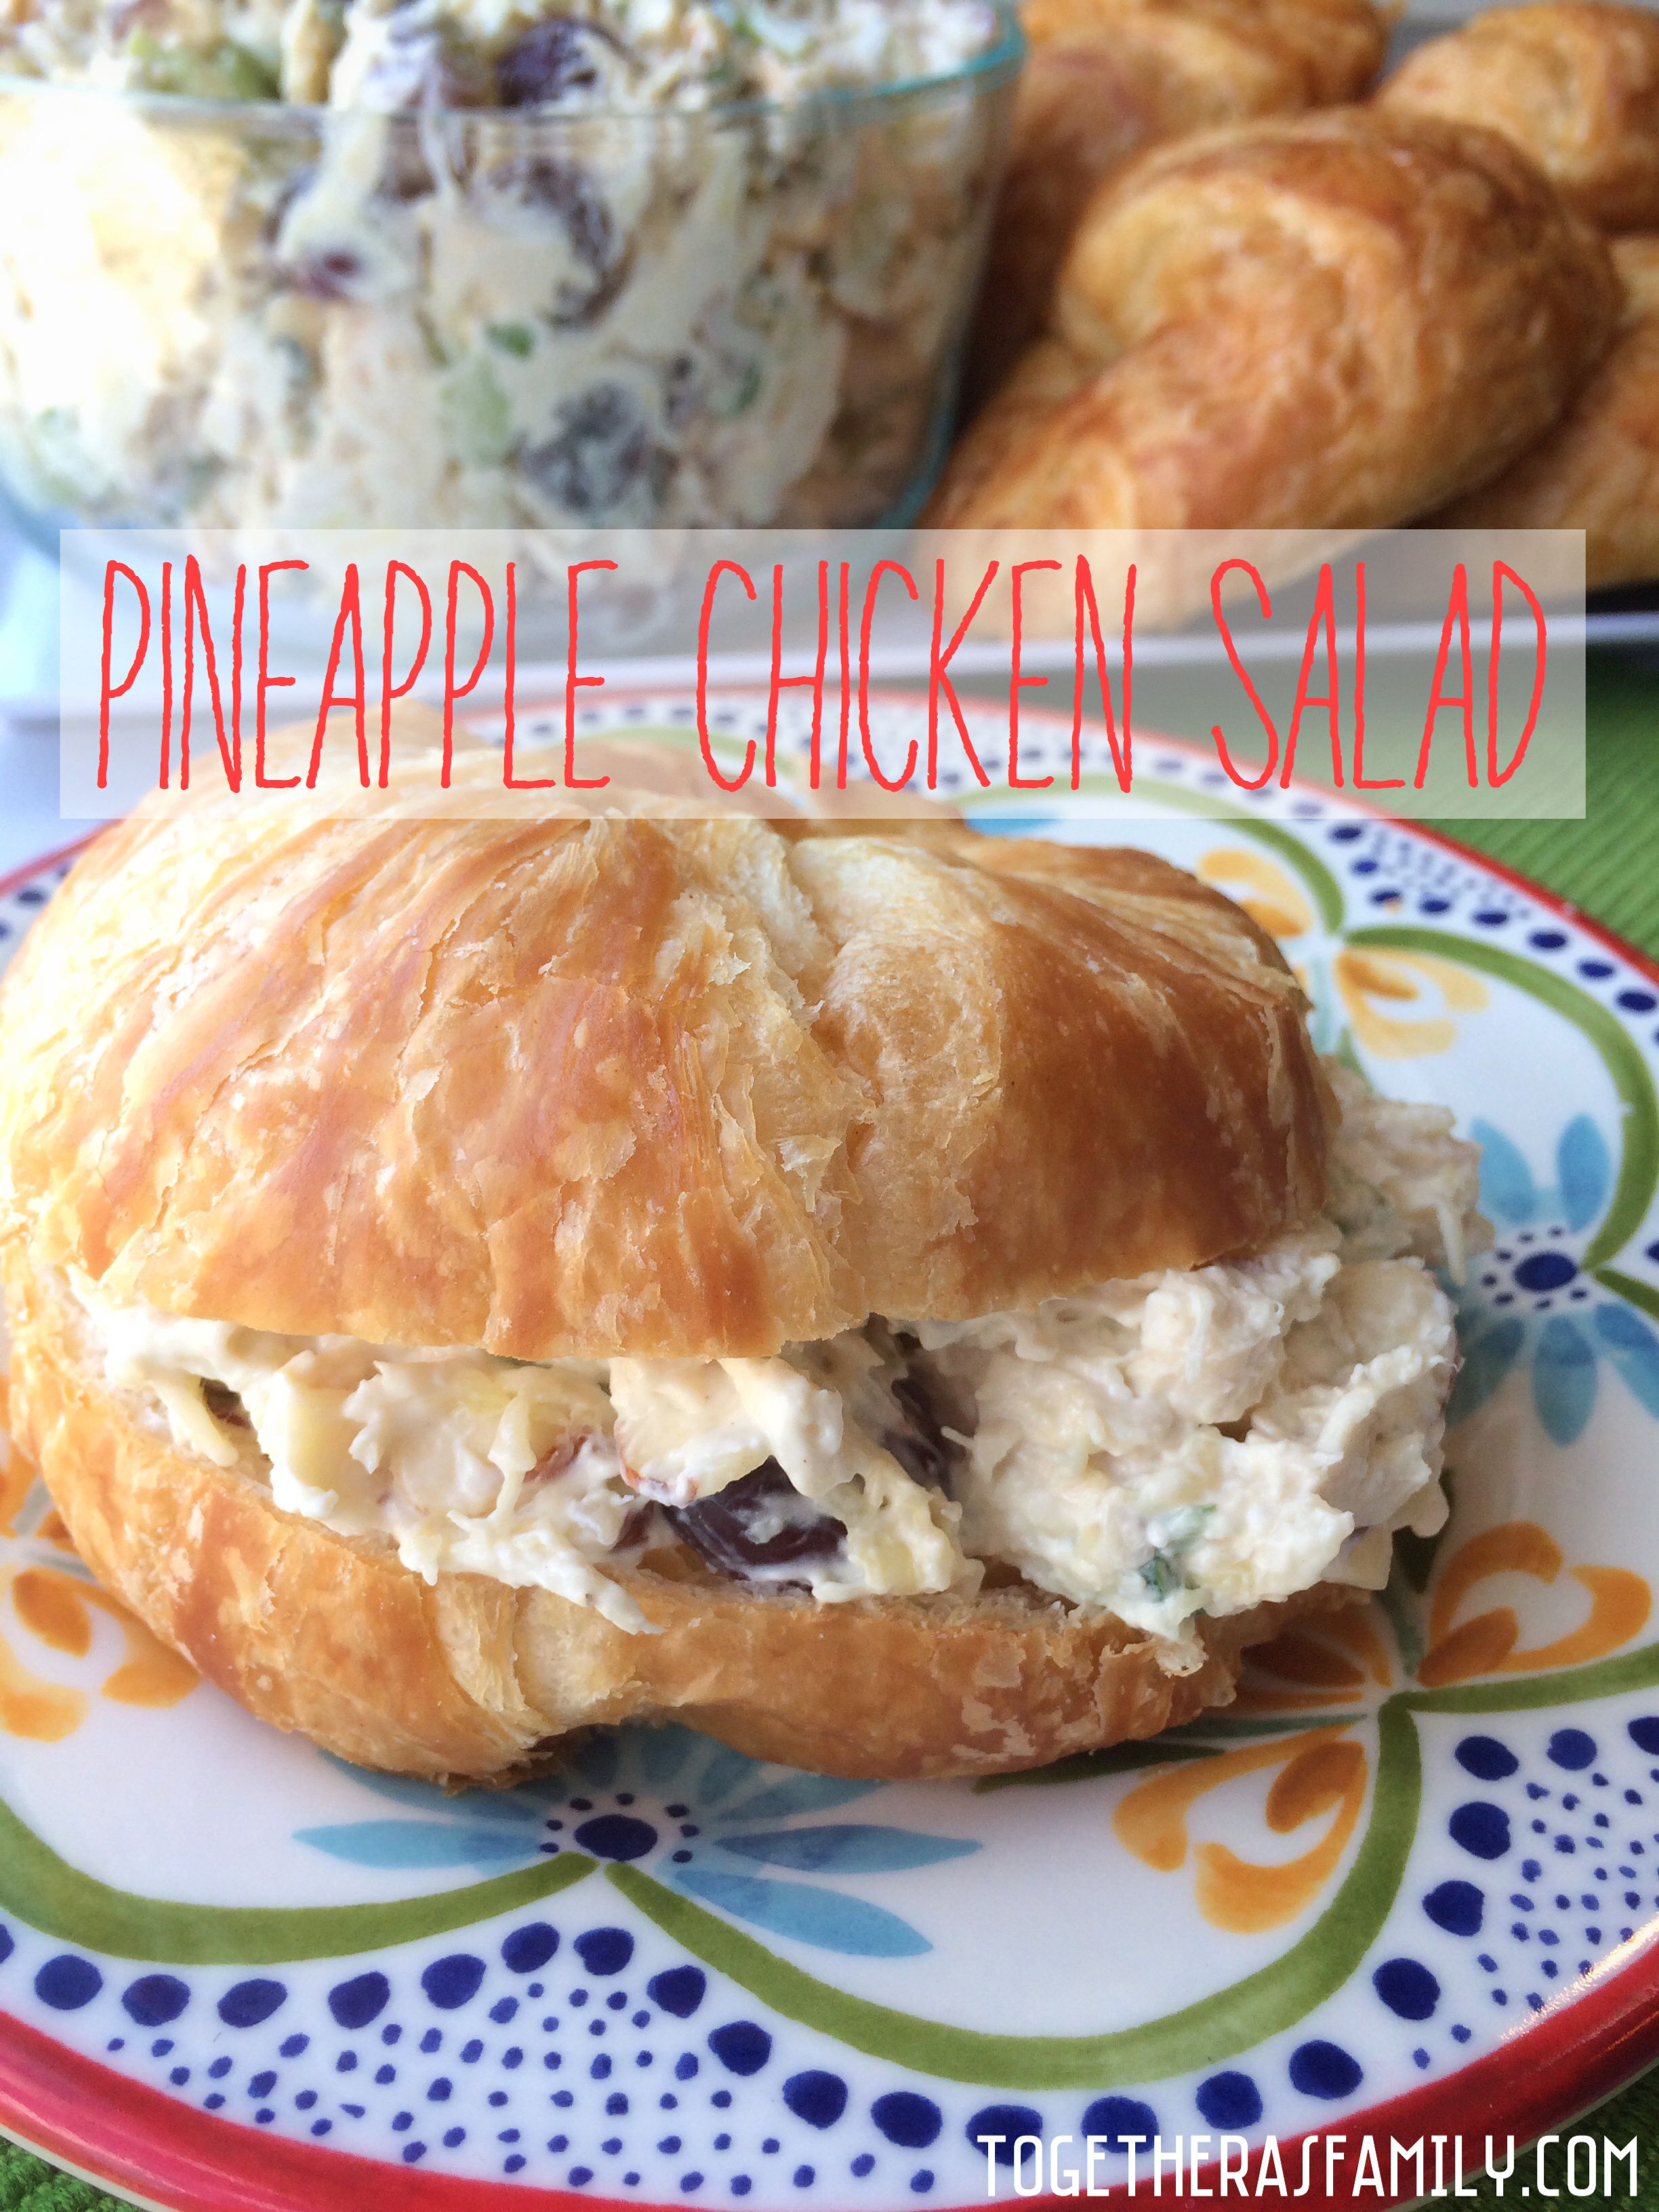 Pineapple Chicken Salad This Is The Best Chicken Salad Ever Has Cream Cheese And